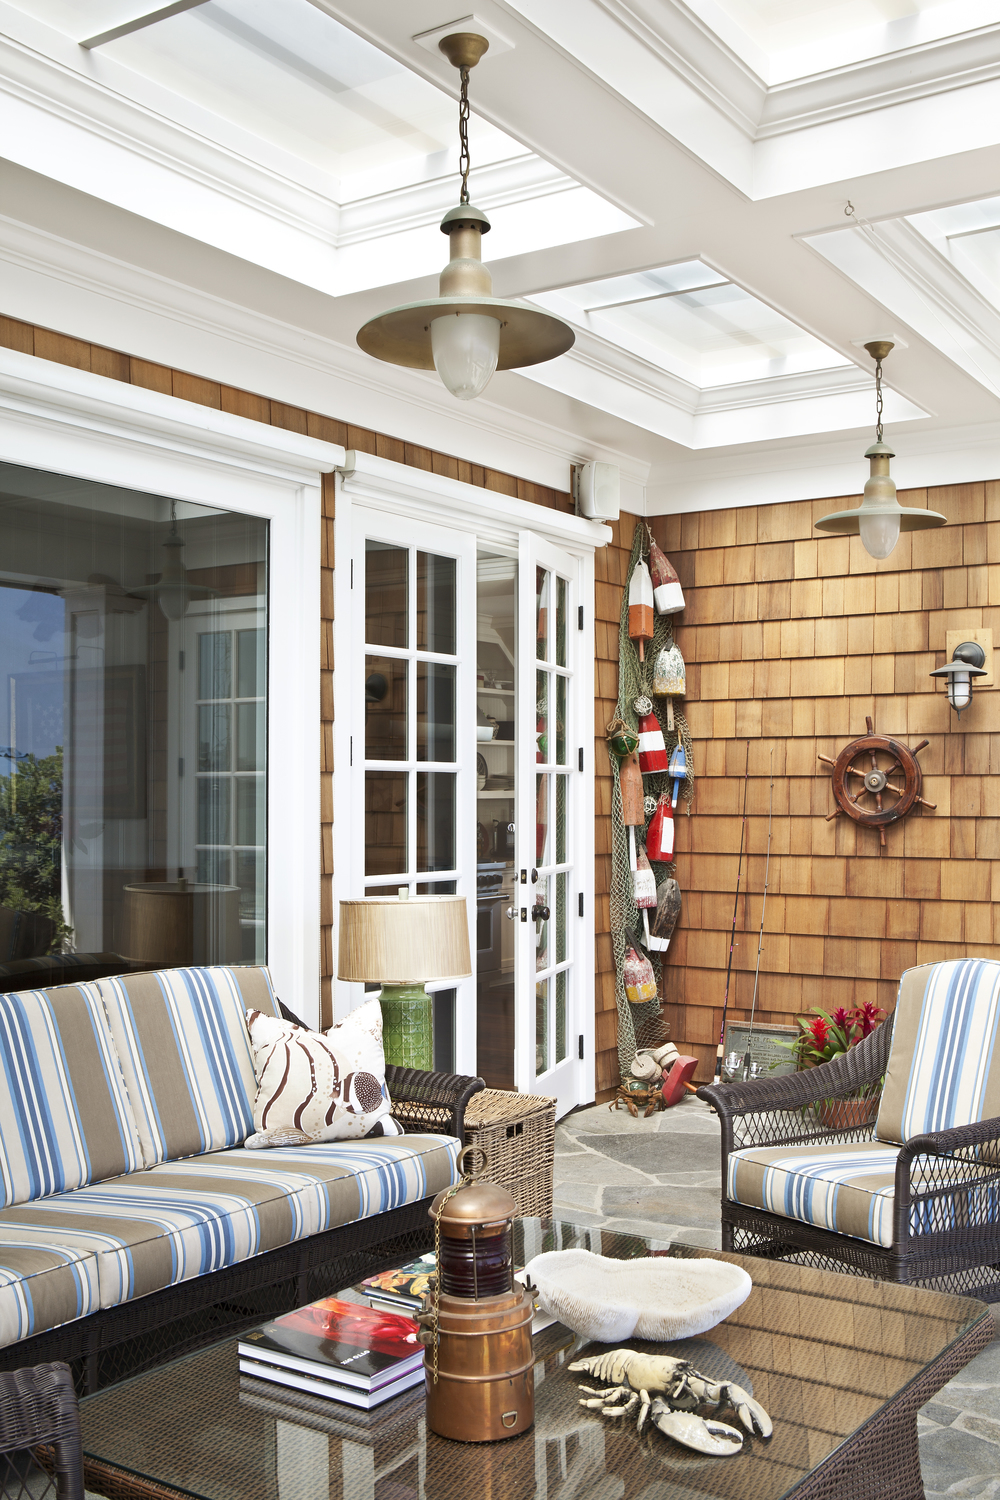 08 Coronado Island Shingle Loggia.jpg